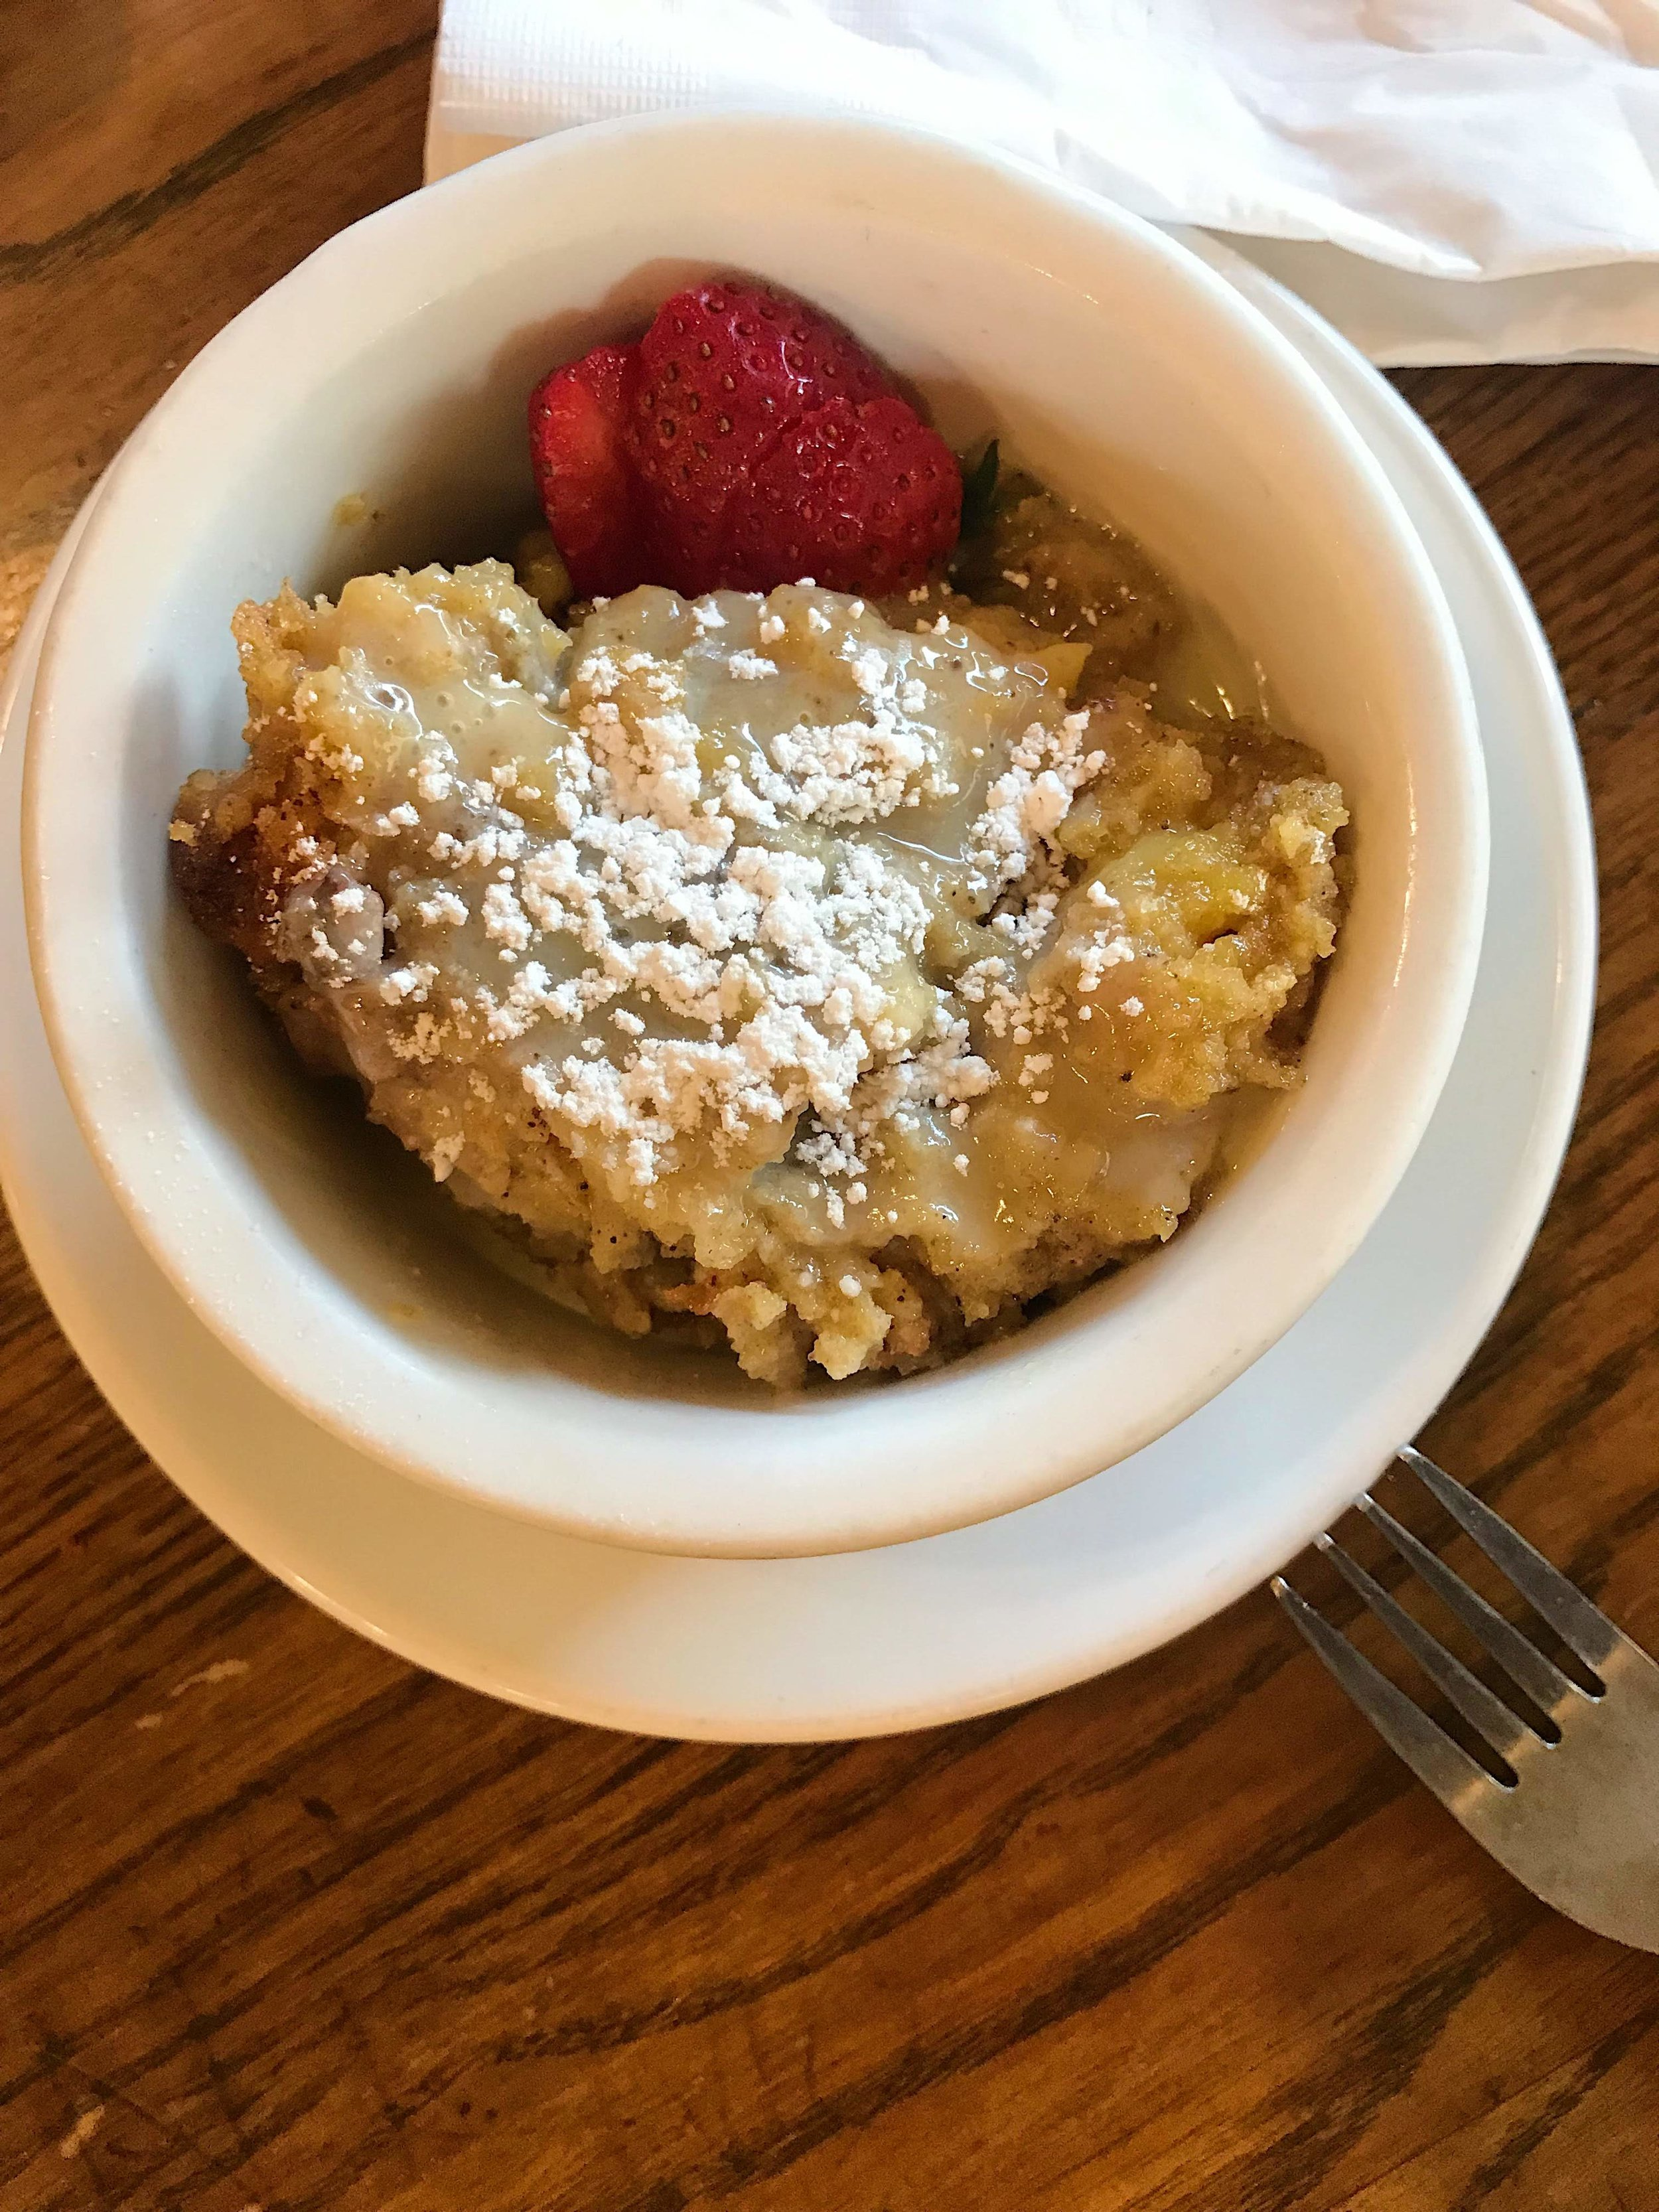 The epitome of bread pudding at Wilie Mae's